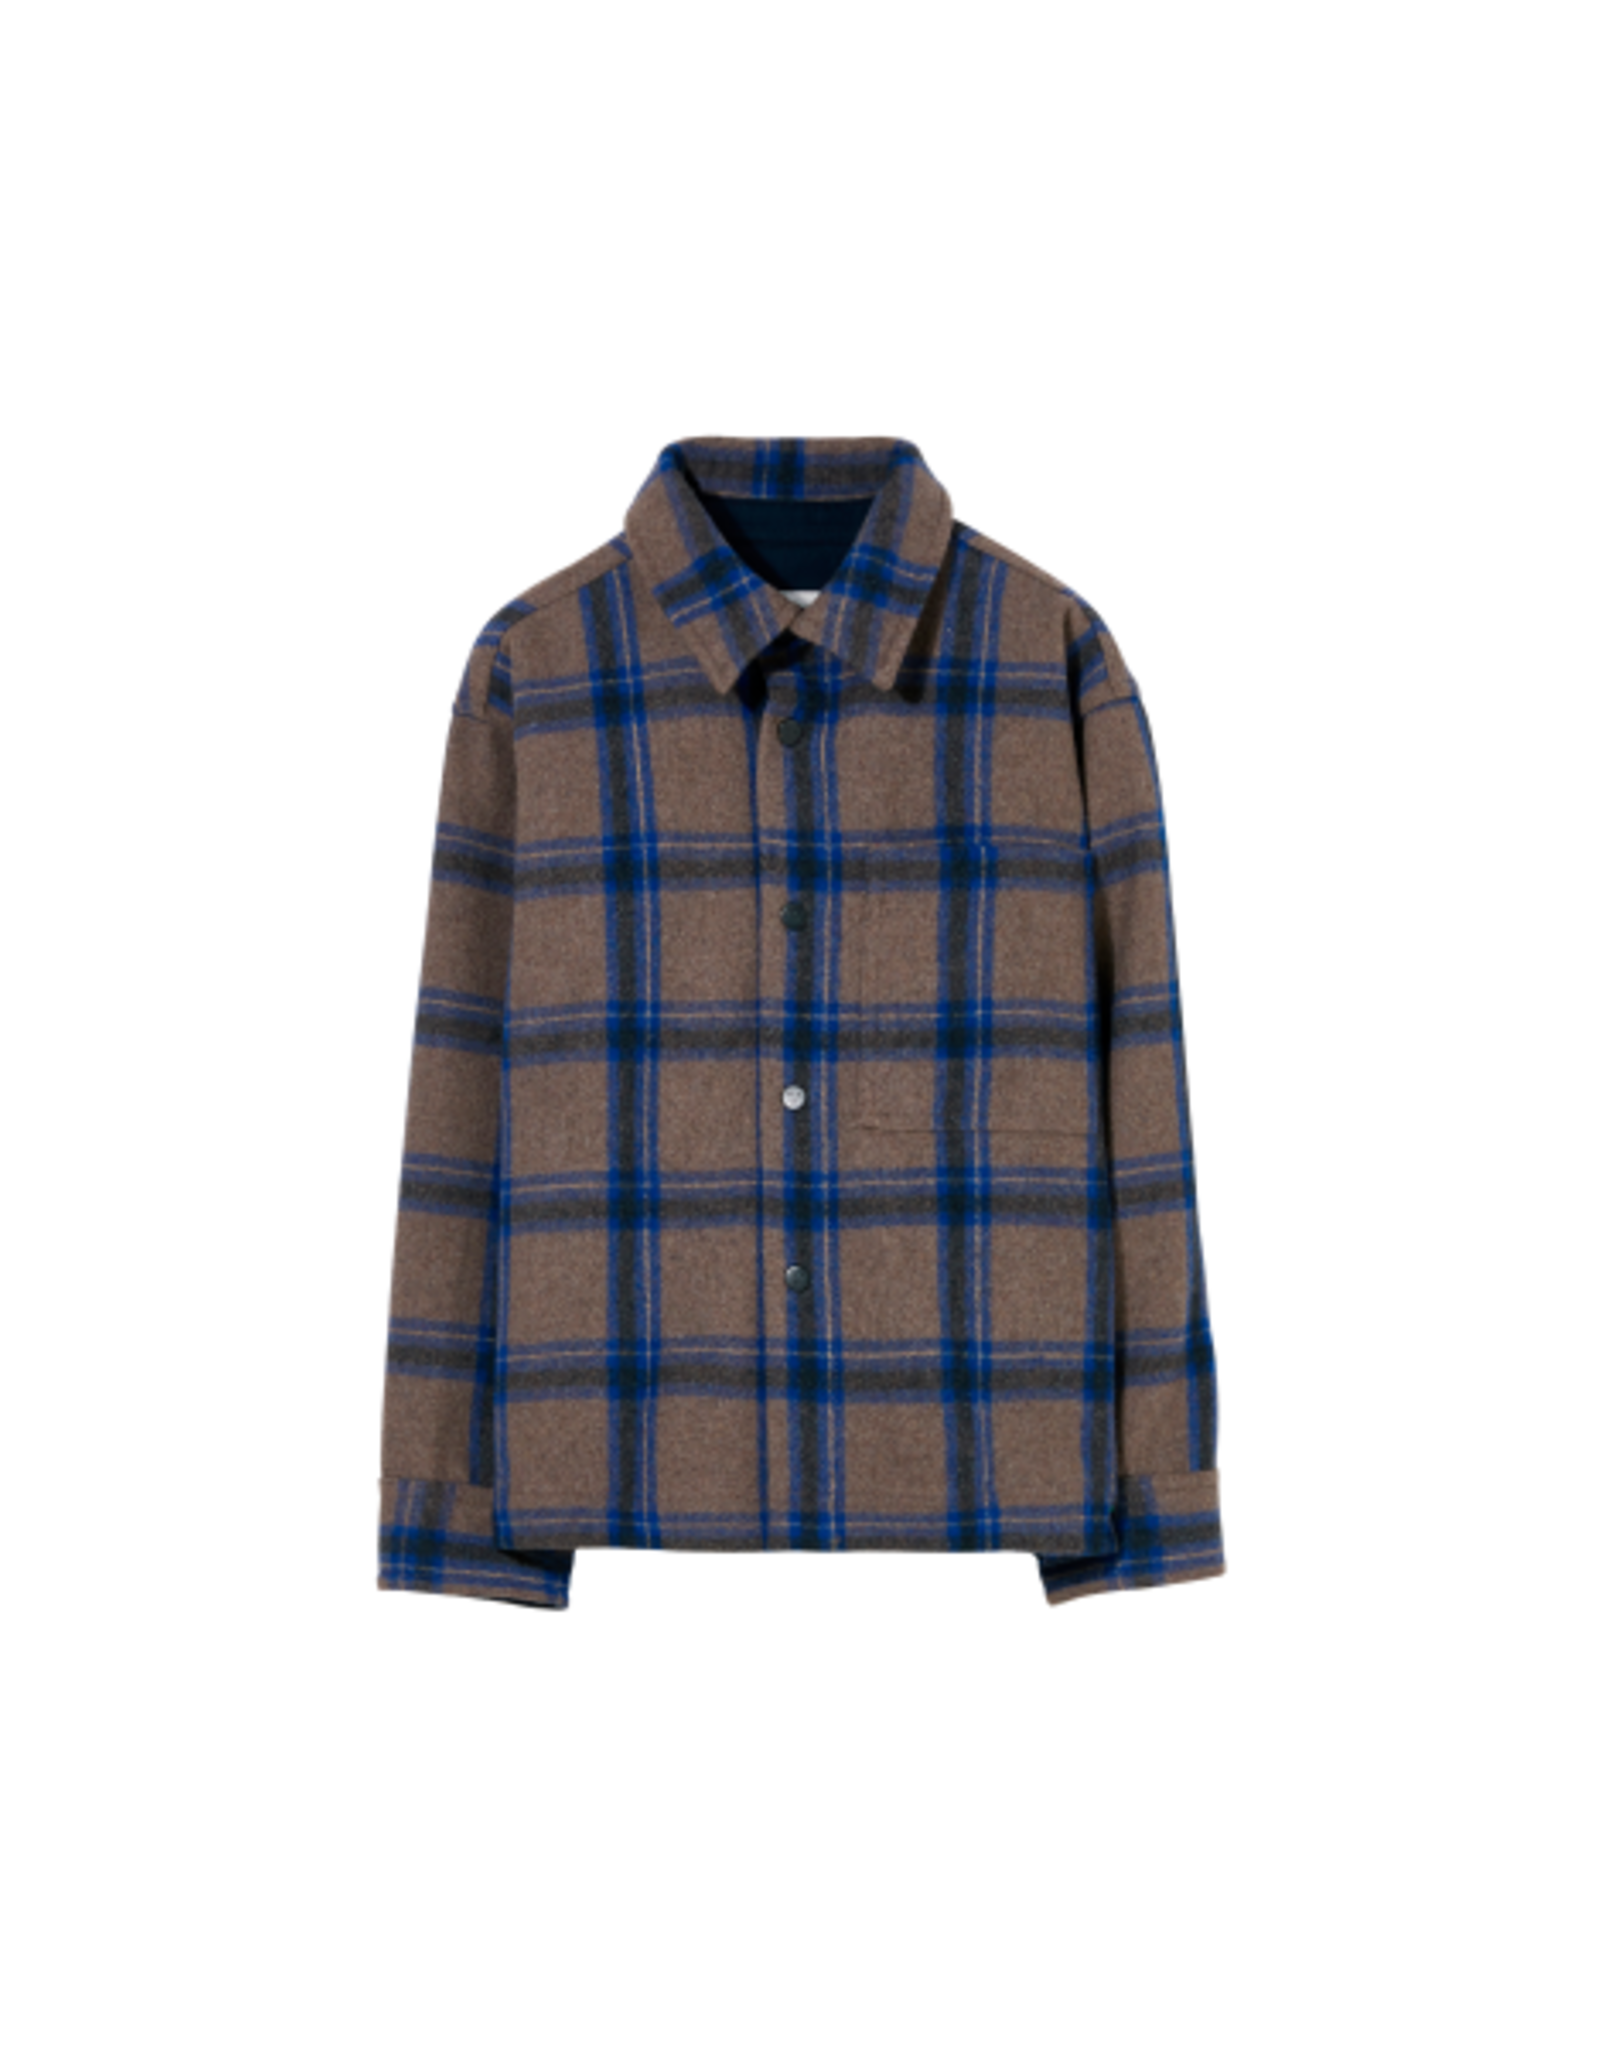 Finger in the Nose Finger in the Nose FW21 Dova grey checkers shirt